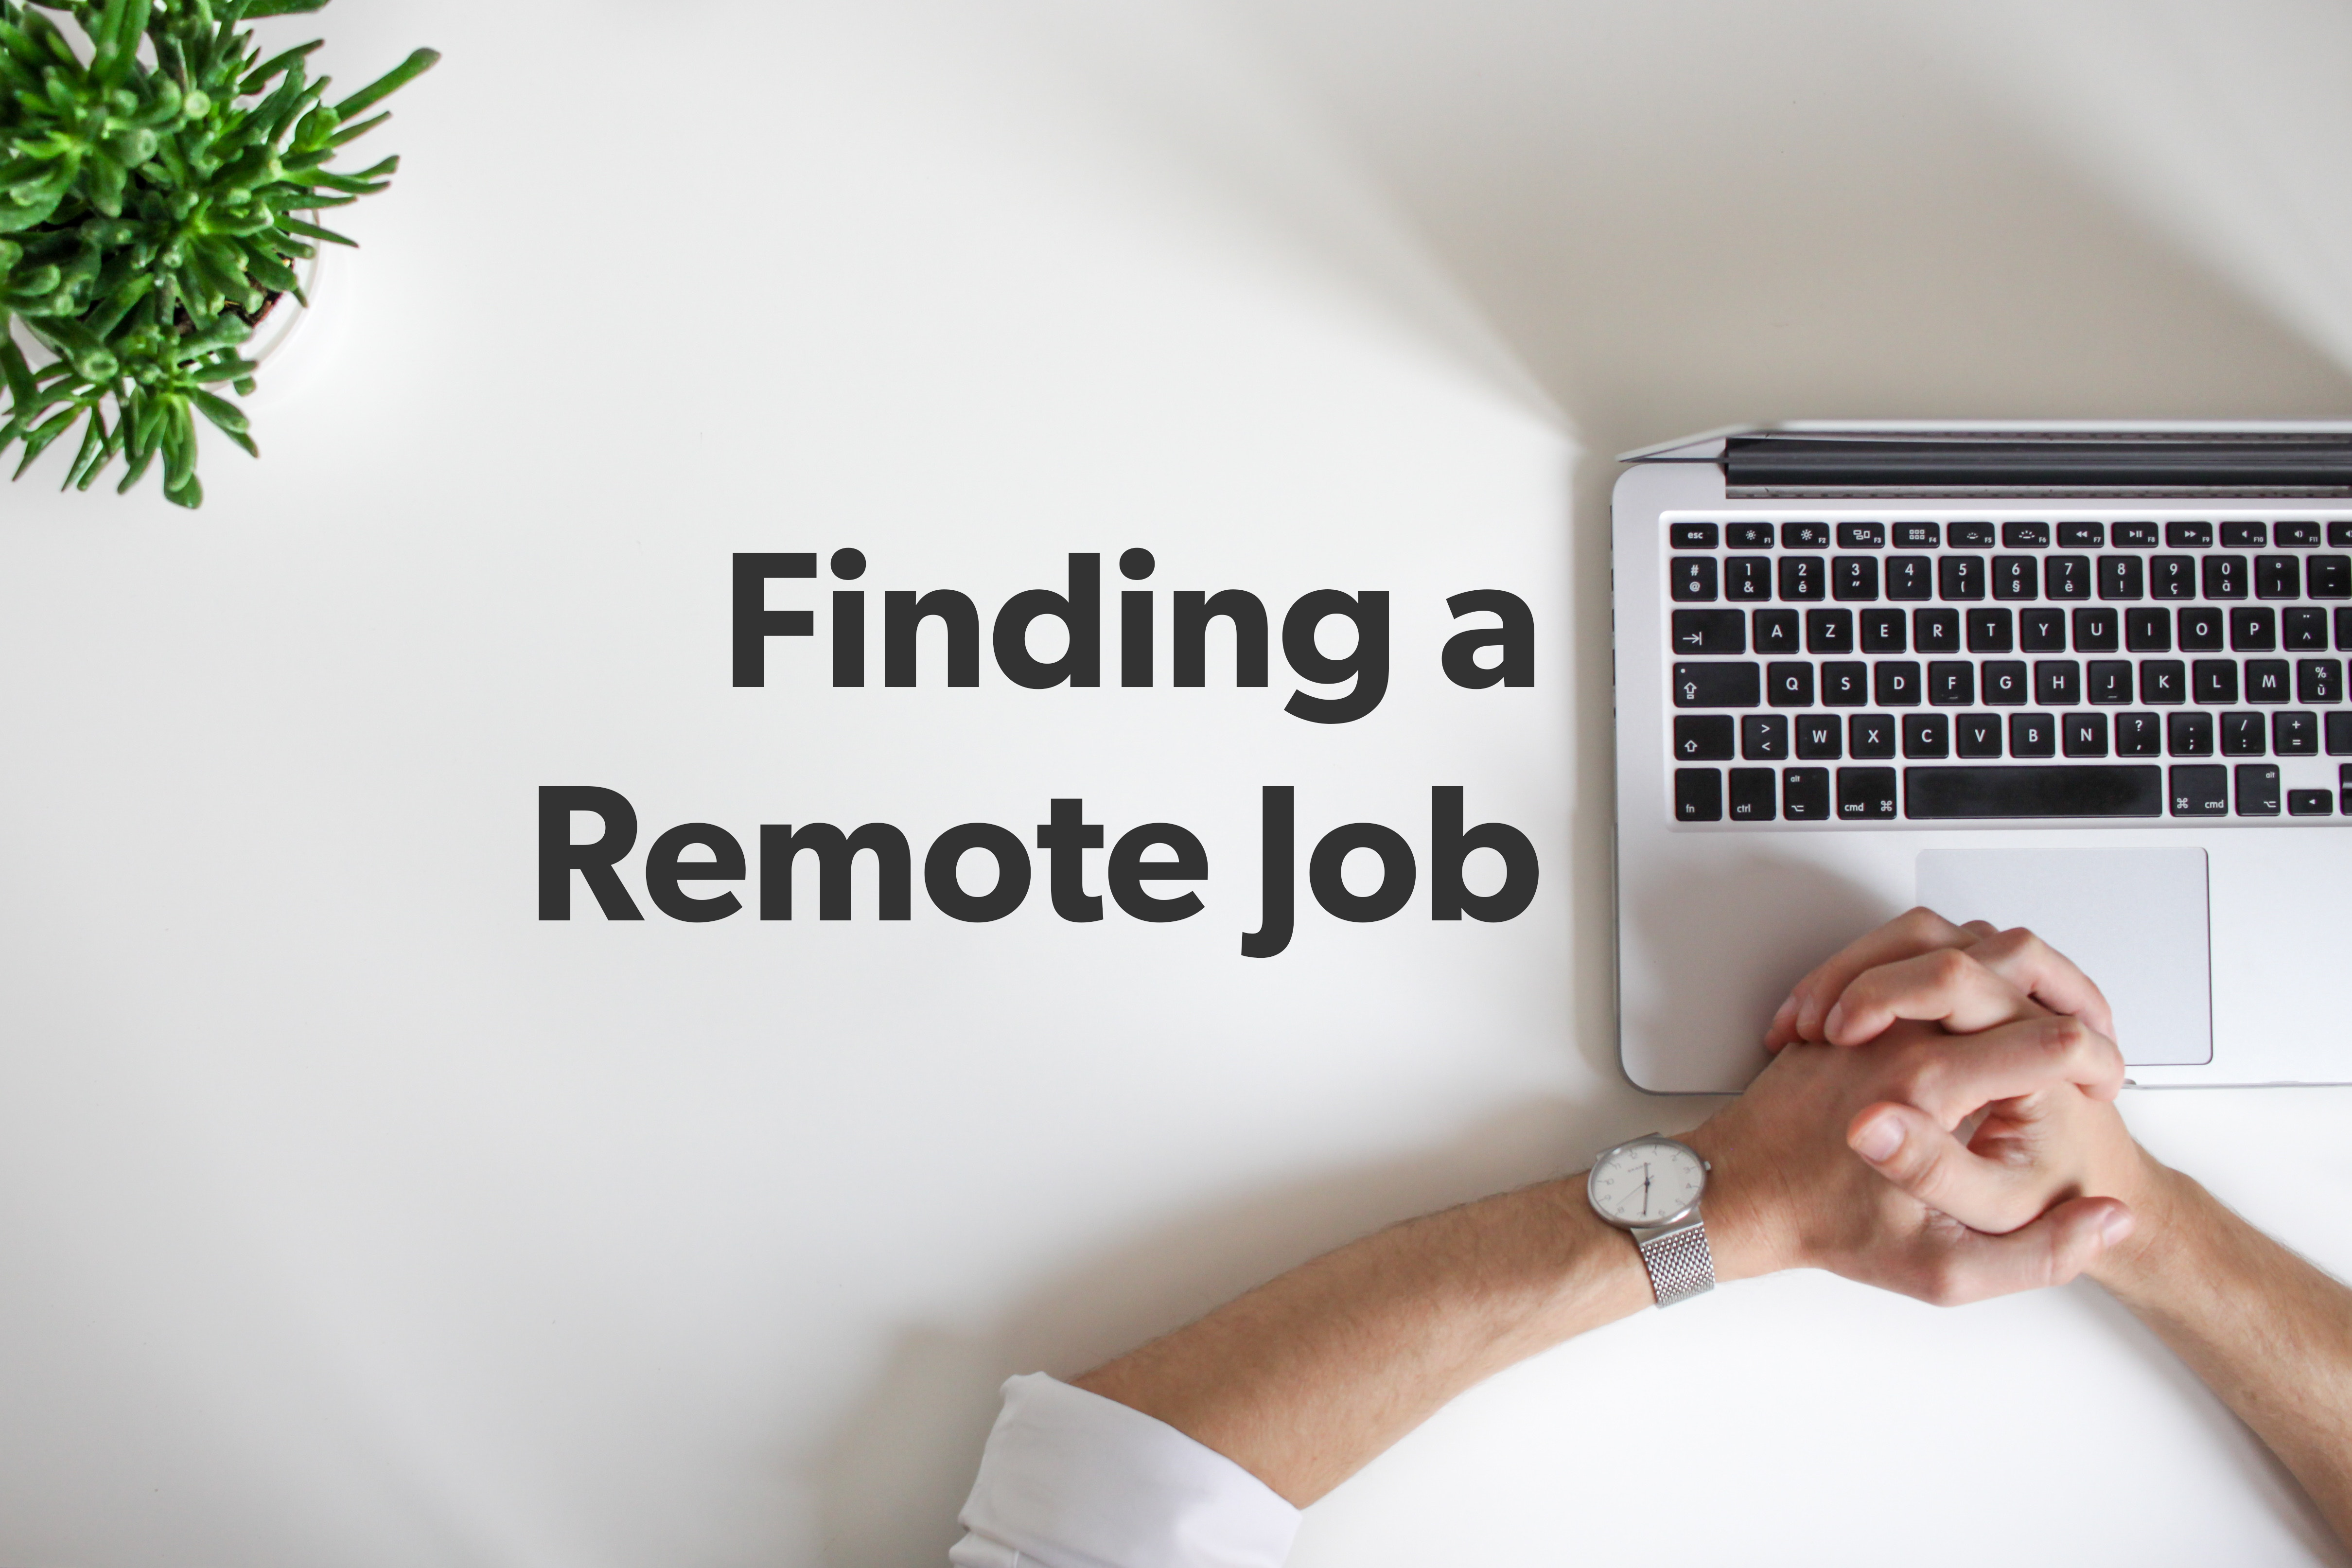 How to find a remote job in 6 steps